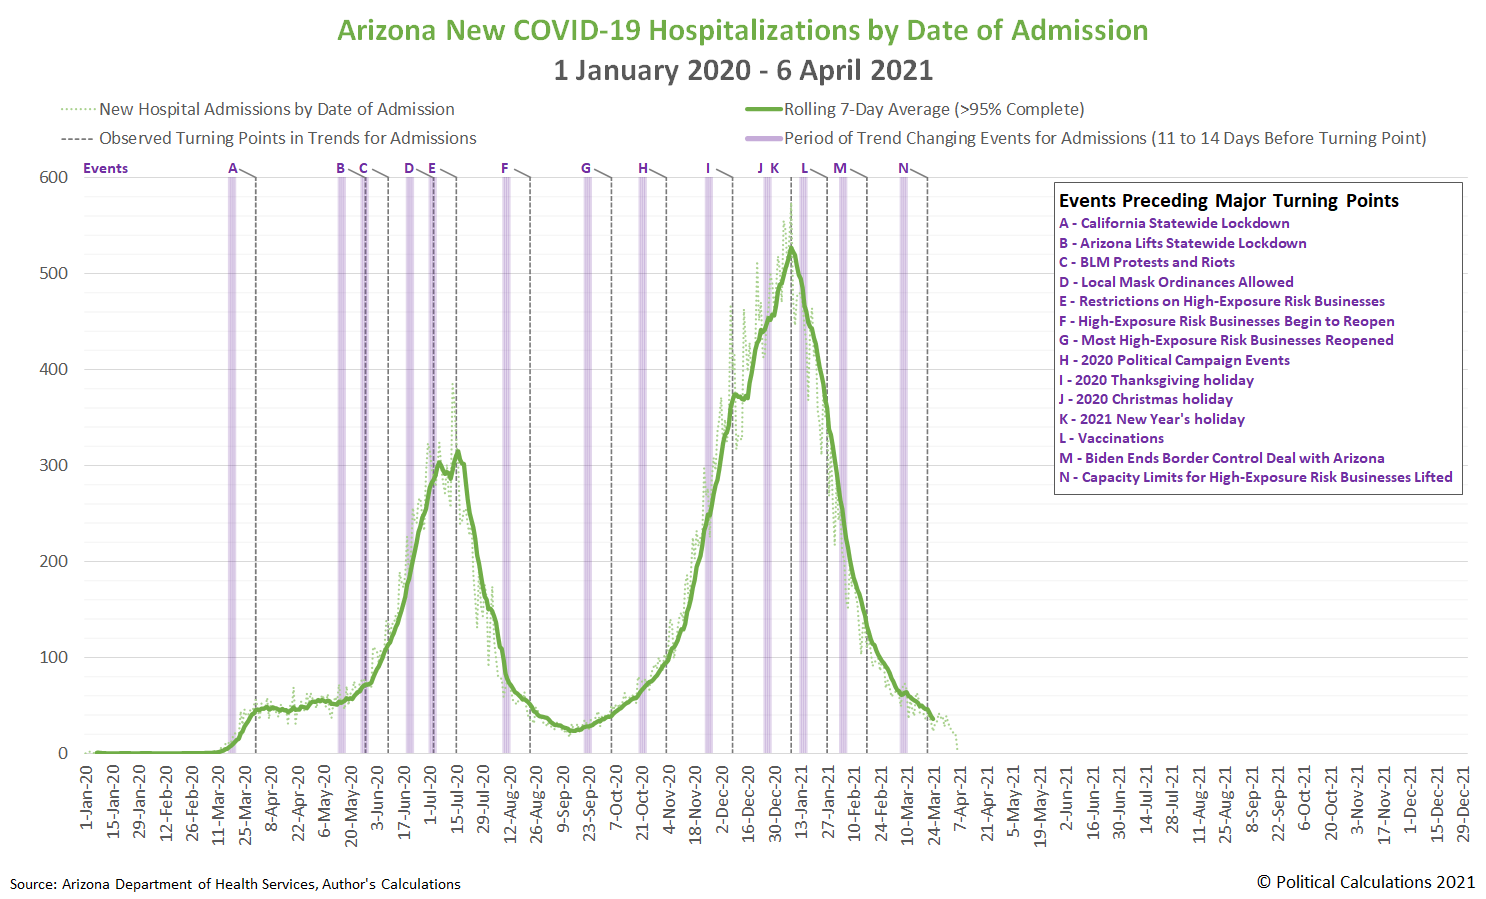 Arizona New COVID-19 Hospitalizations by Date of Admission, 1 January 2020 - 6 April 2021